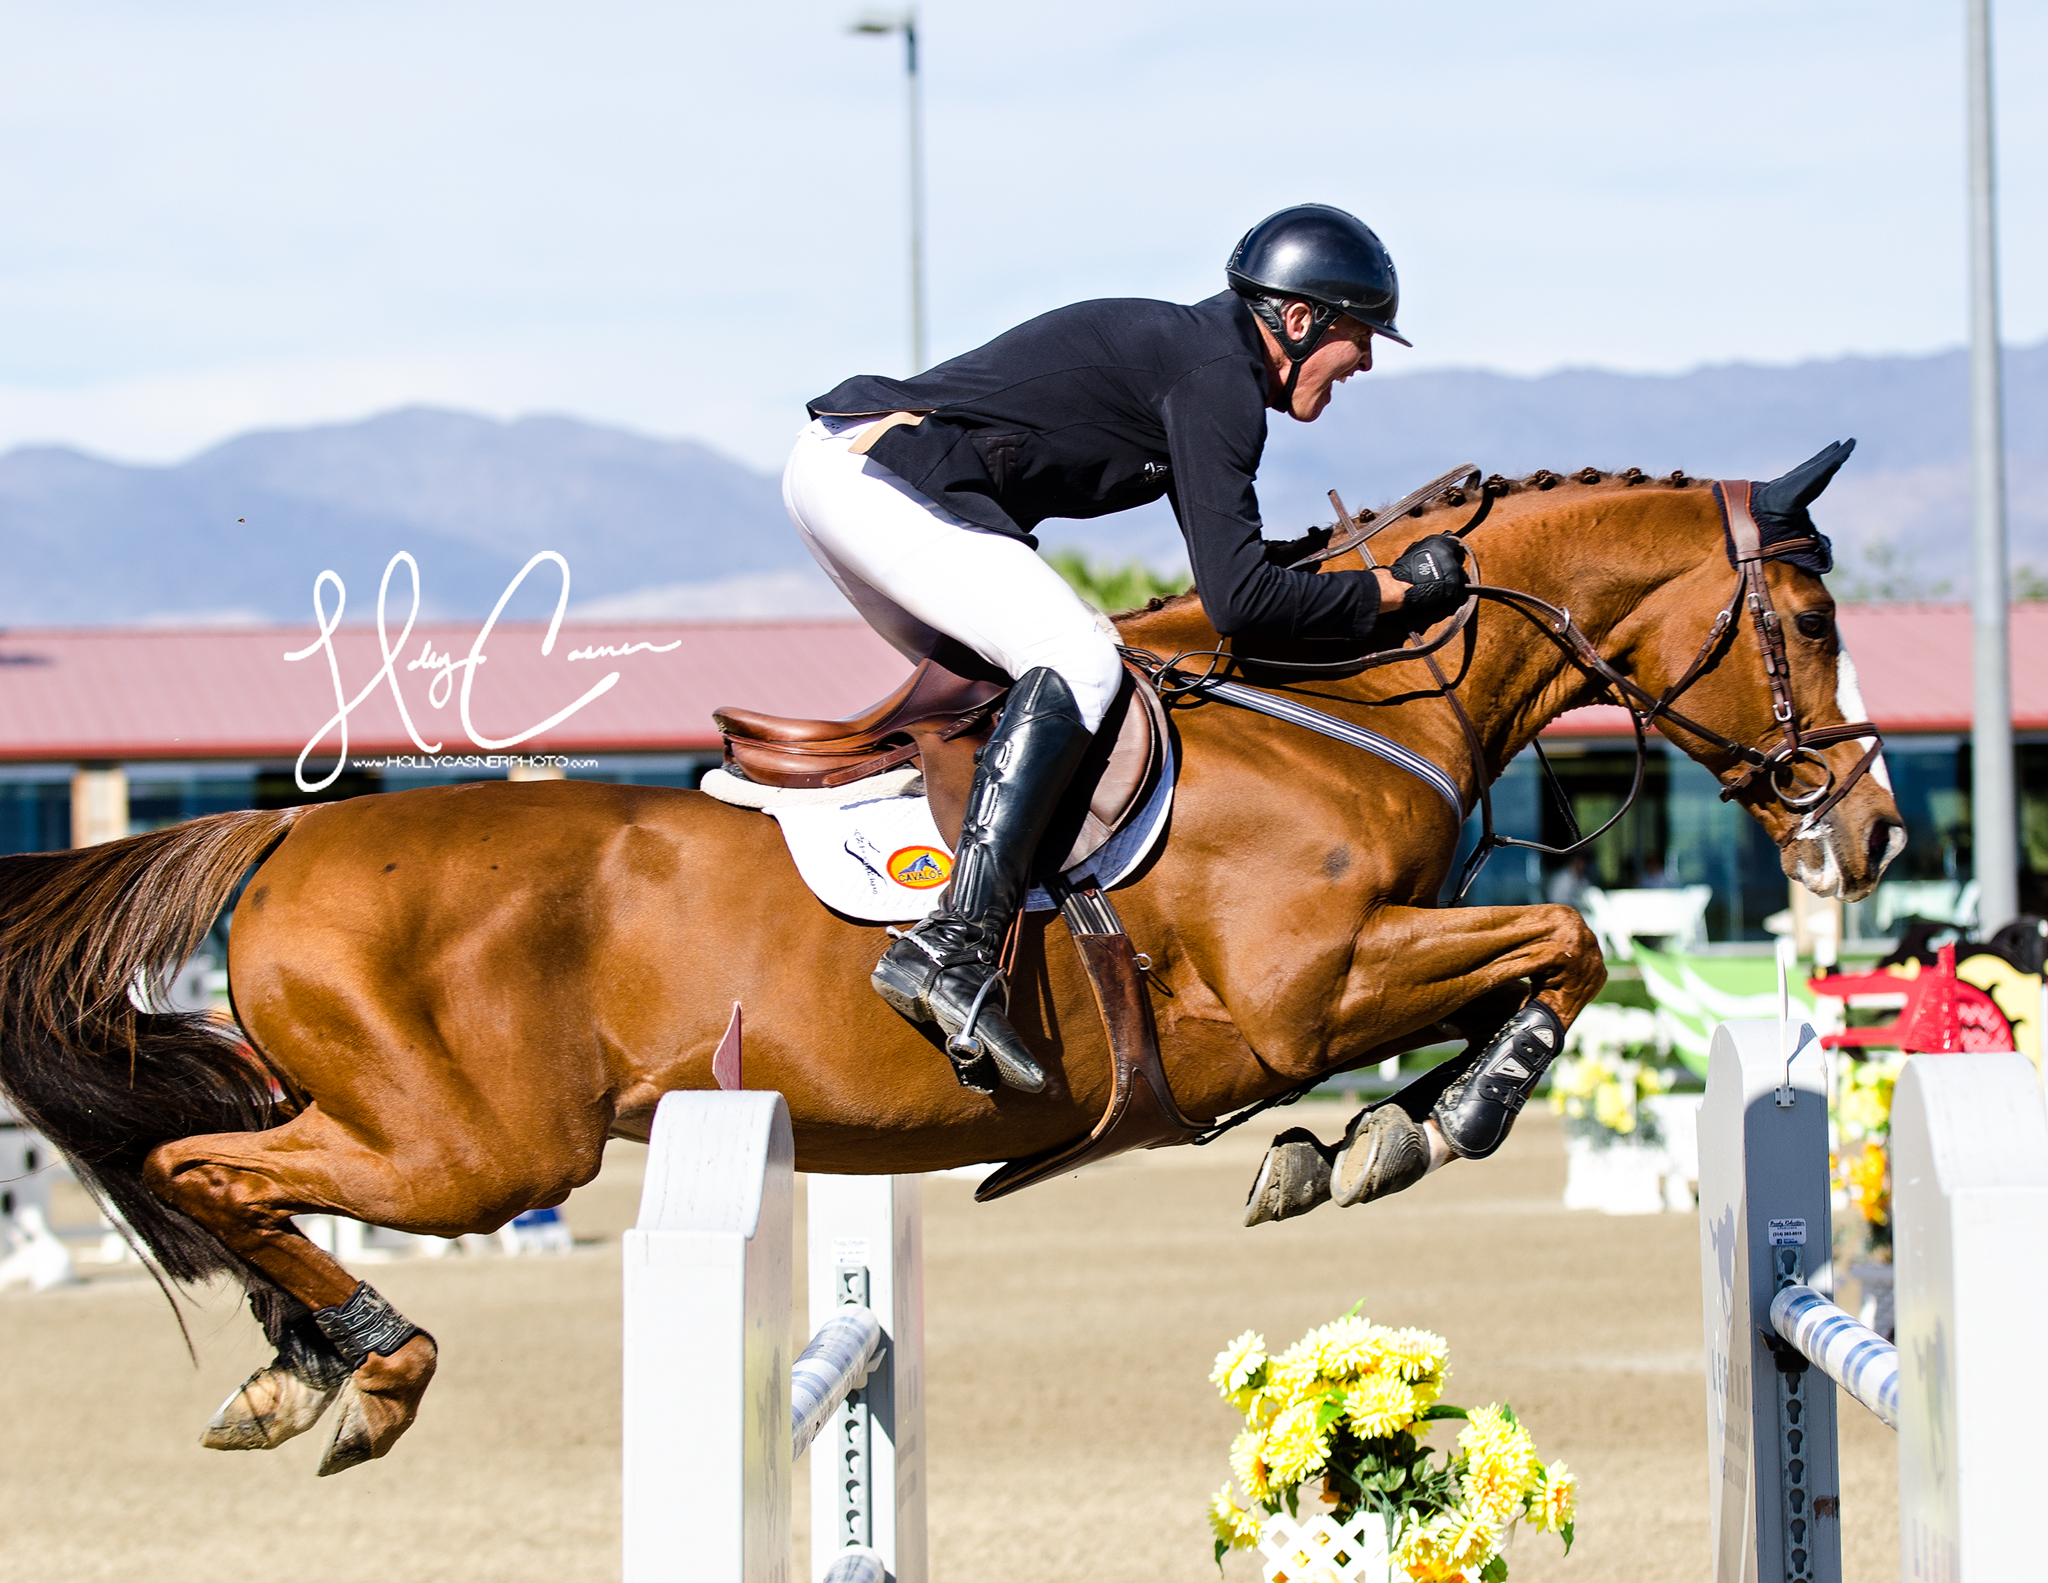 Holly Casner, The Equestrian Photographer – Horse Show Photography – Jumpers